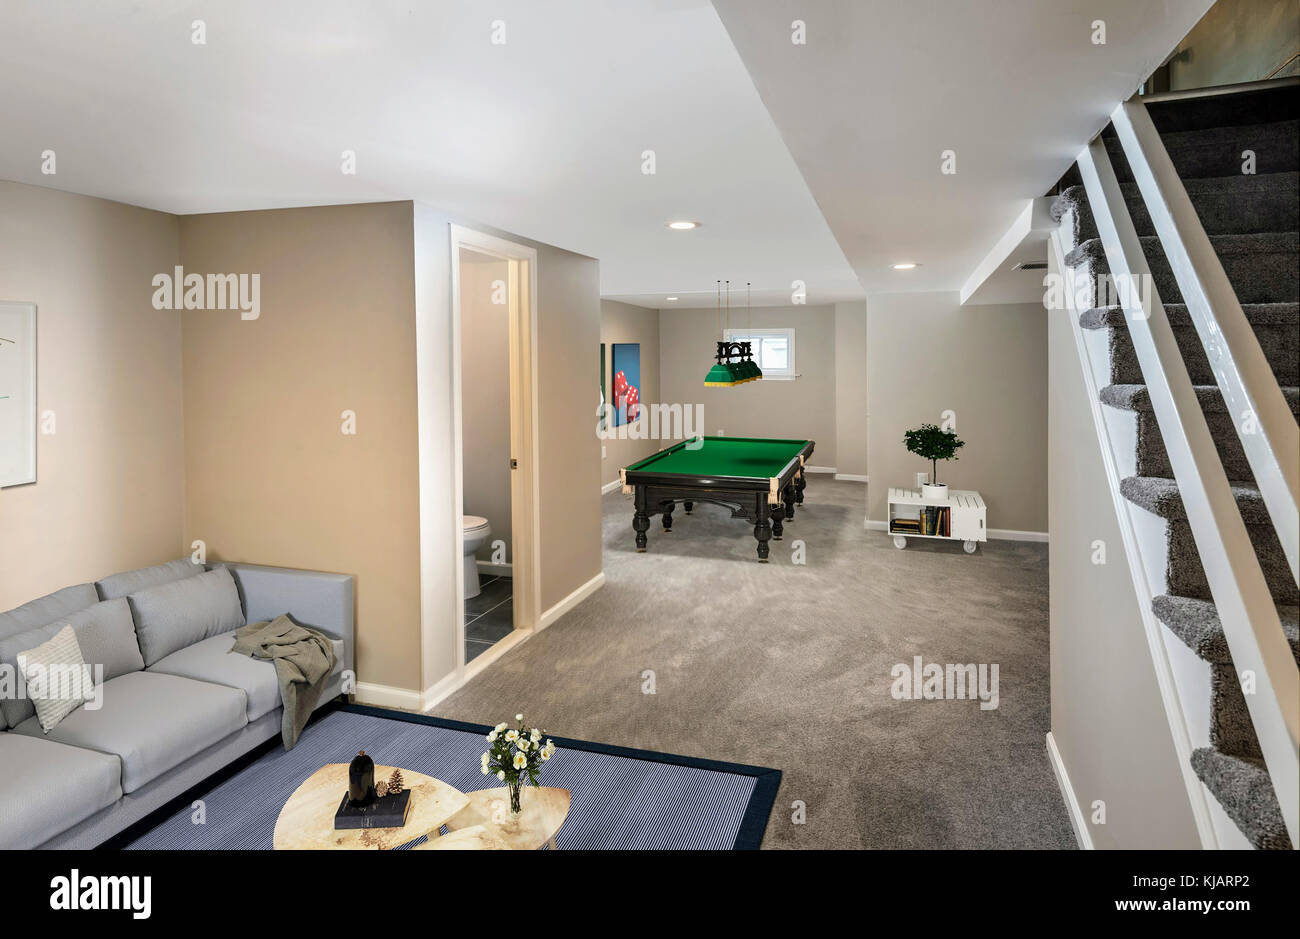 Finished Basement In Small Townhome, USA - Stock Image